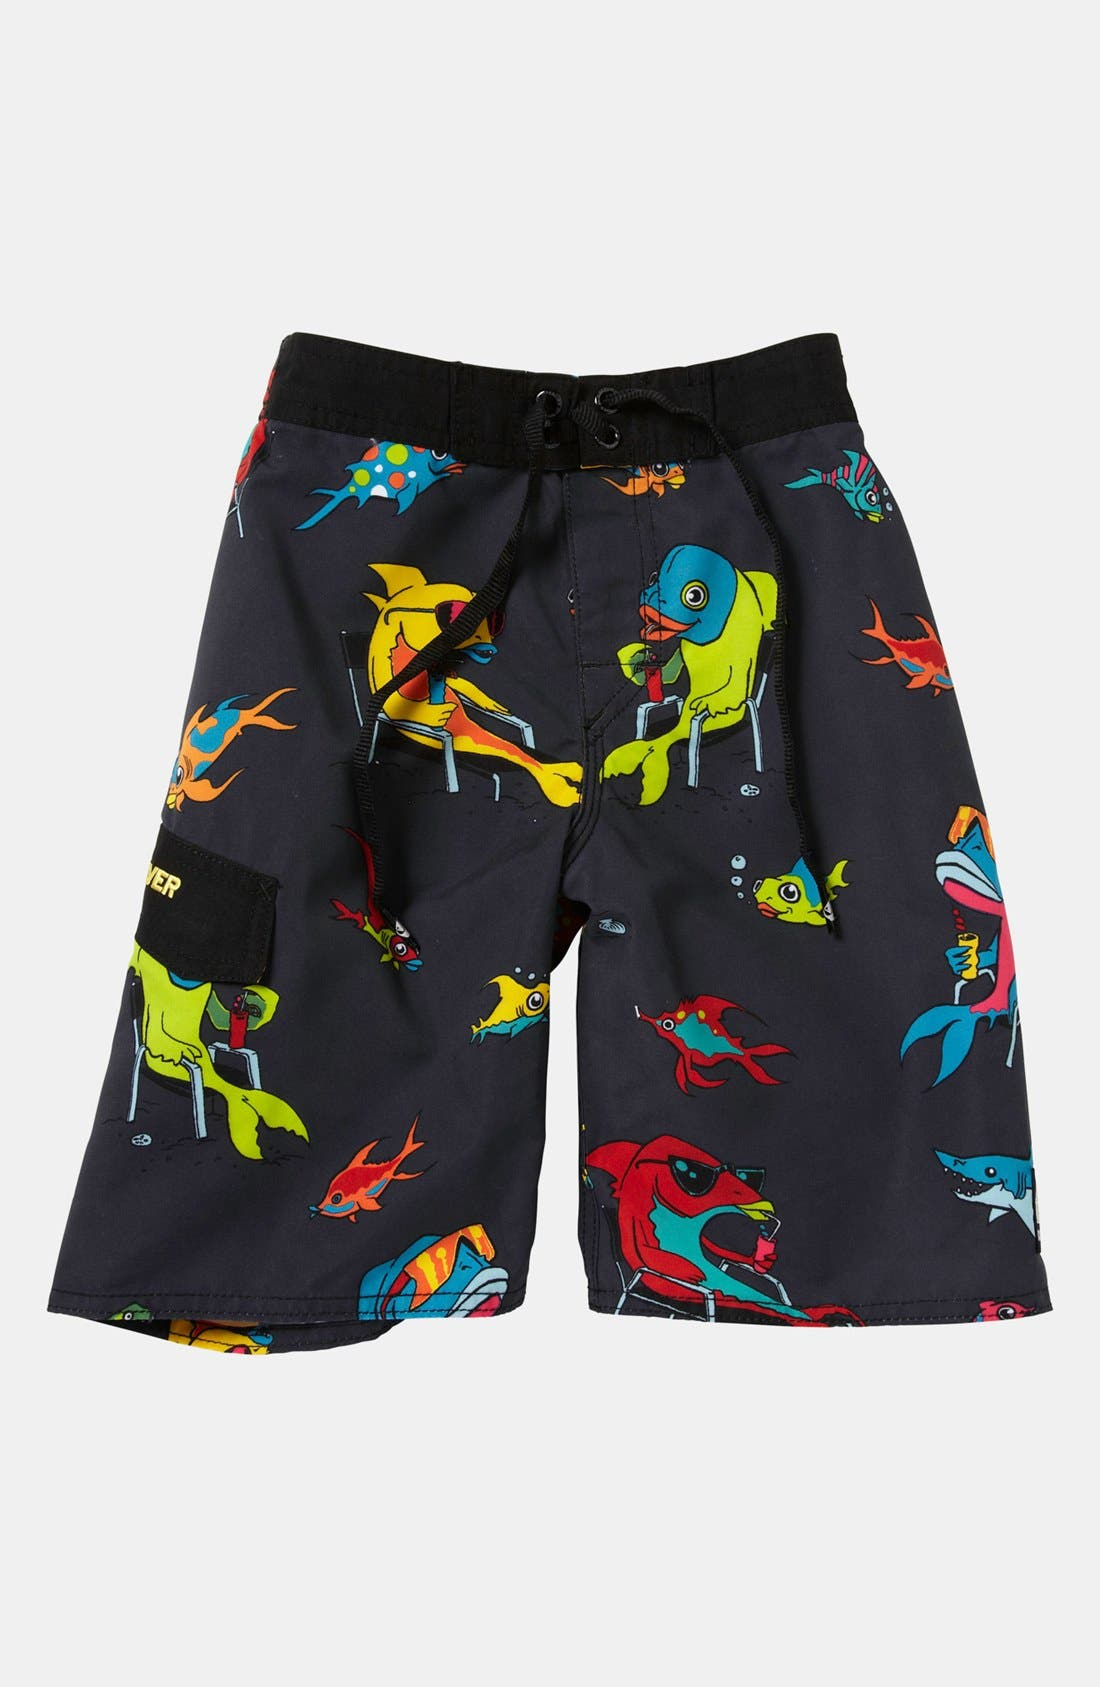 Alternate Image 1 Selected - Quiksilver 'Fish Tacoz' Board Shorts (Little Boys)